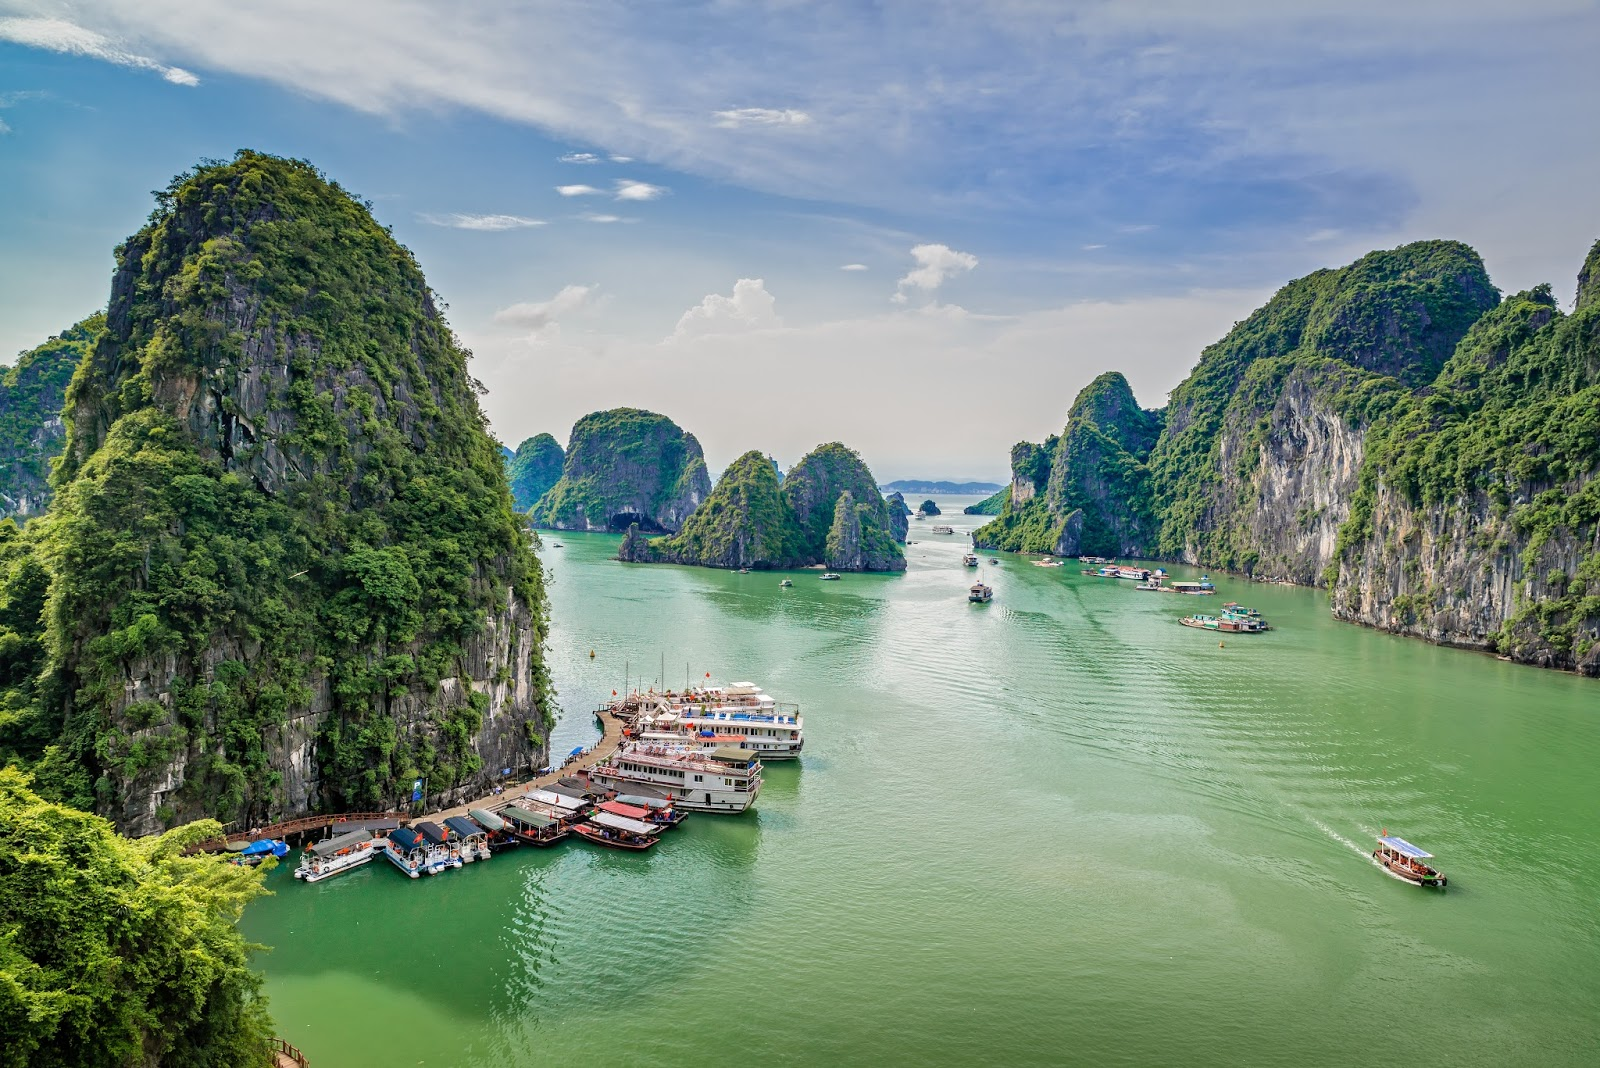 Goasiadaytrip 39 S Blog Halong Bay Hanoi And Hoi An Entered The Top 10 Most Beautiful Places In